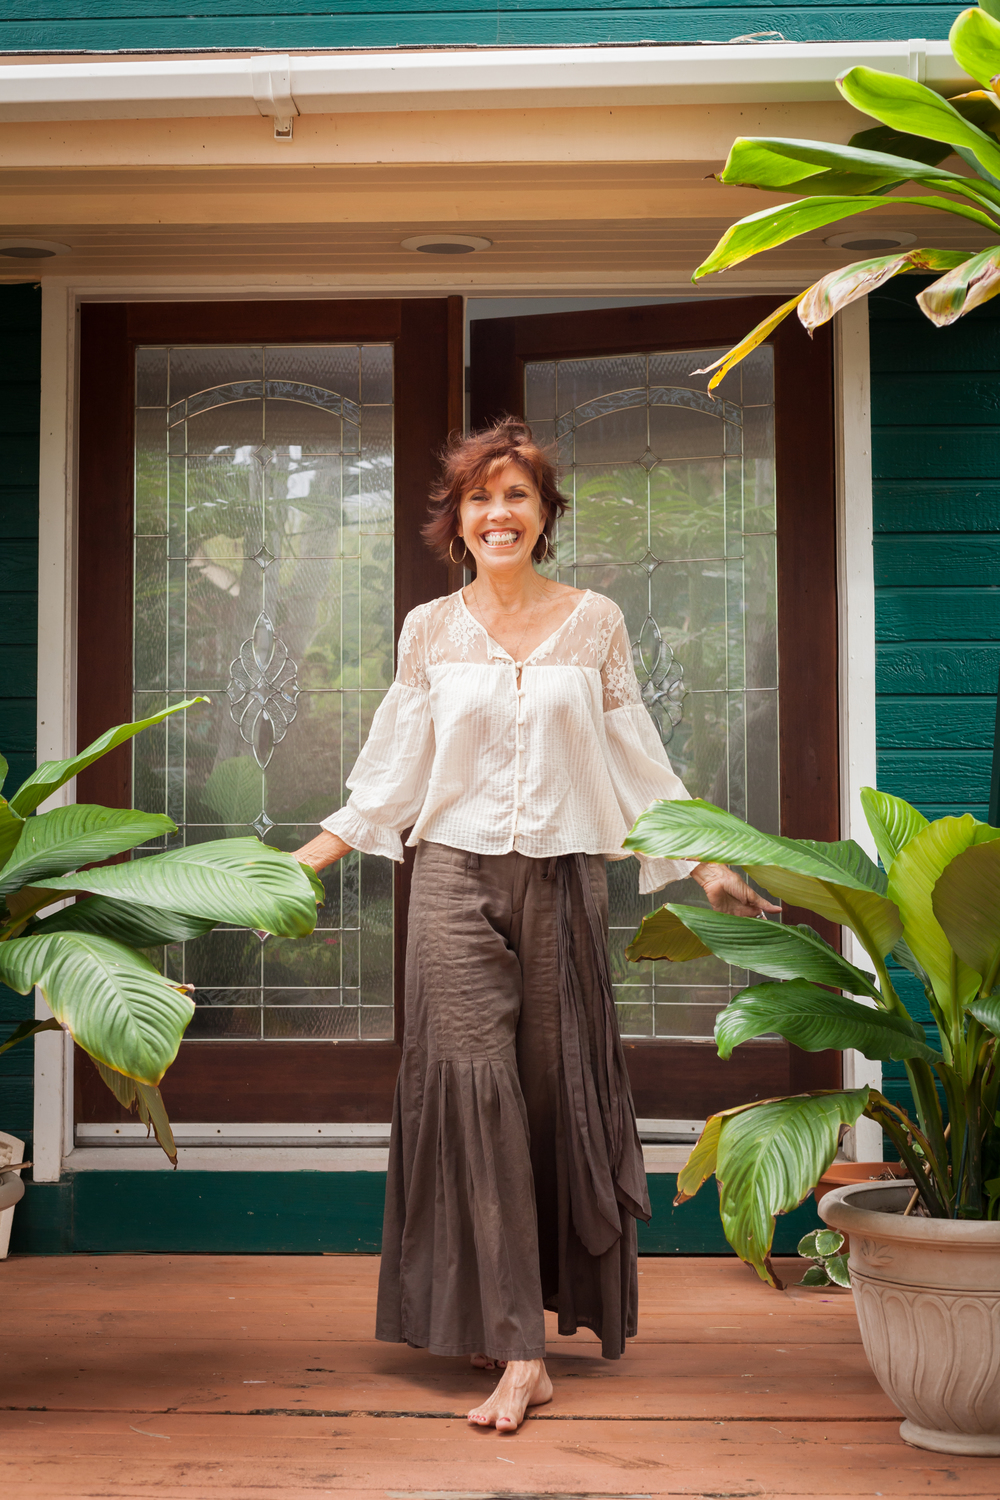 Susan Teton at home in Maui, Hawaii. Currently in her 7th decade, Susan is living proof of what life looks like when you love yourself and take care of your body by making eating and living well a daily spiritual practice.